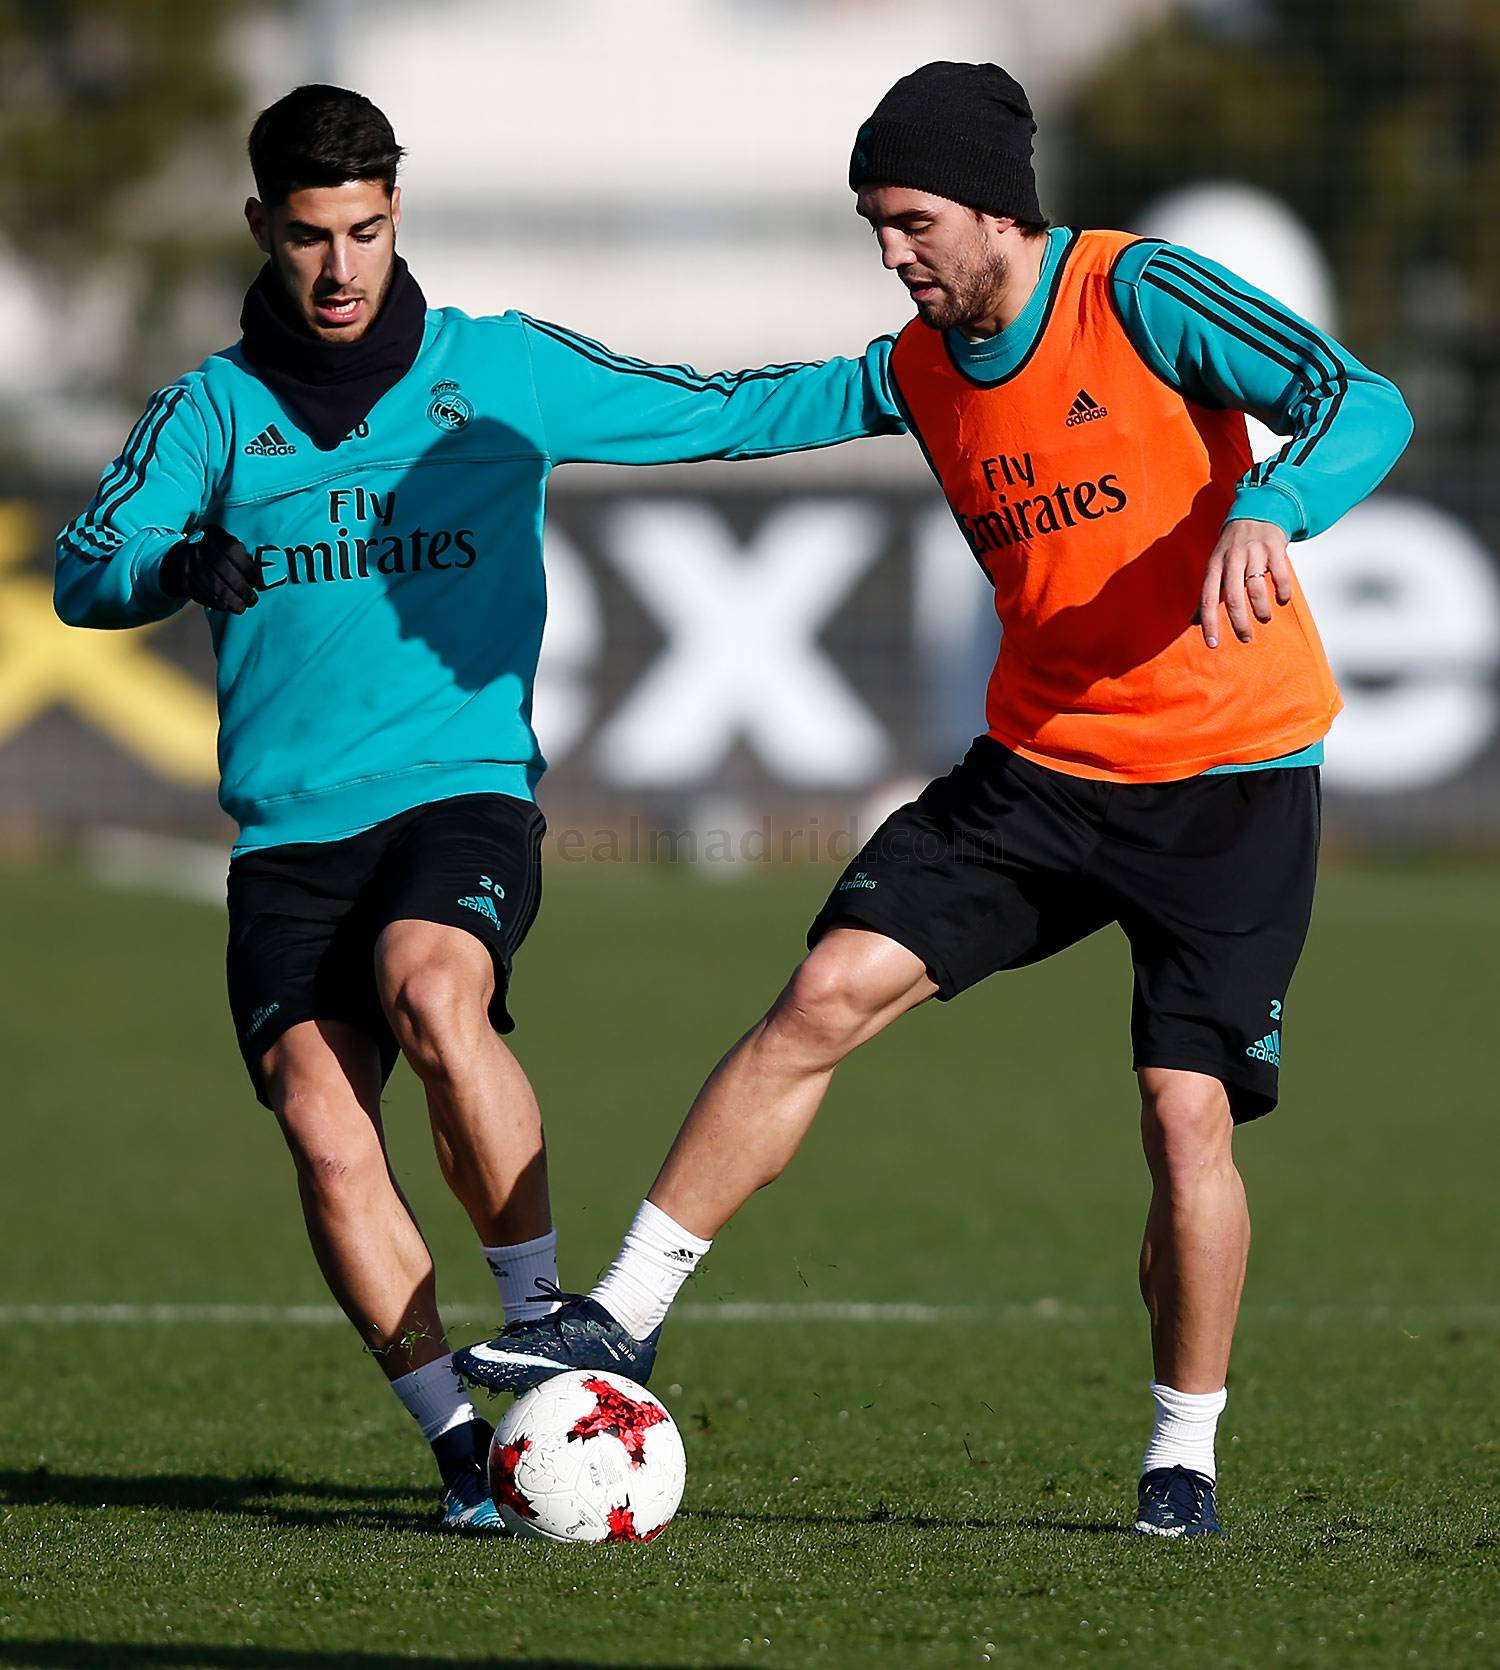 Real Madrid - Entrenamiento del Real Madrid en el estadio Santiago Bernabéu - 02-01-2018